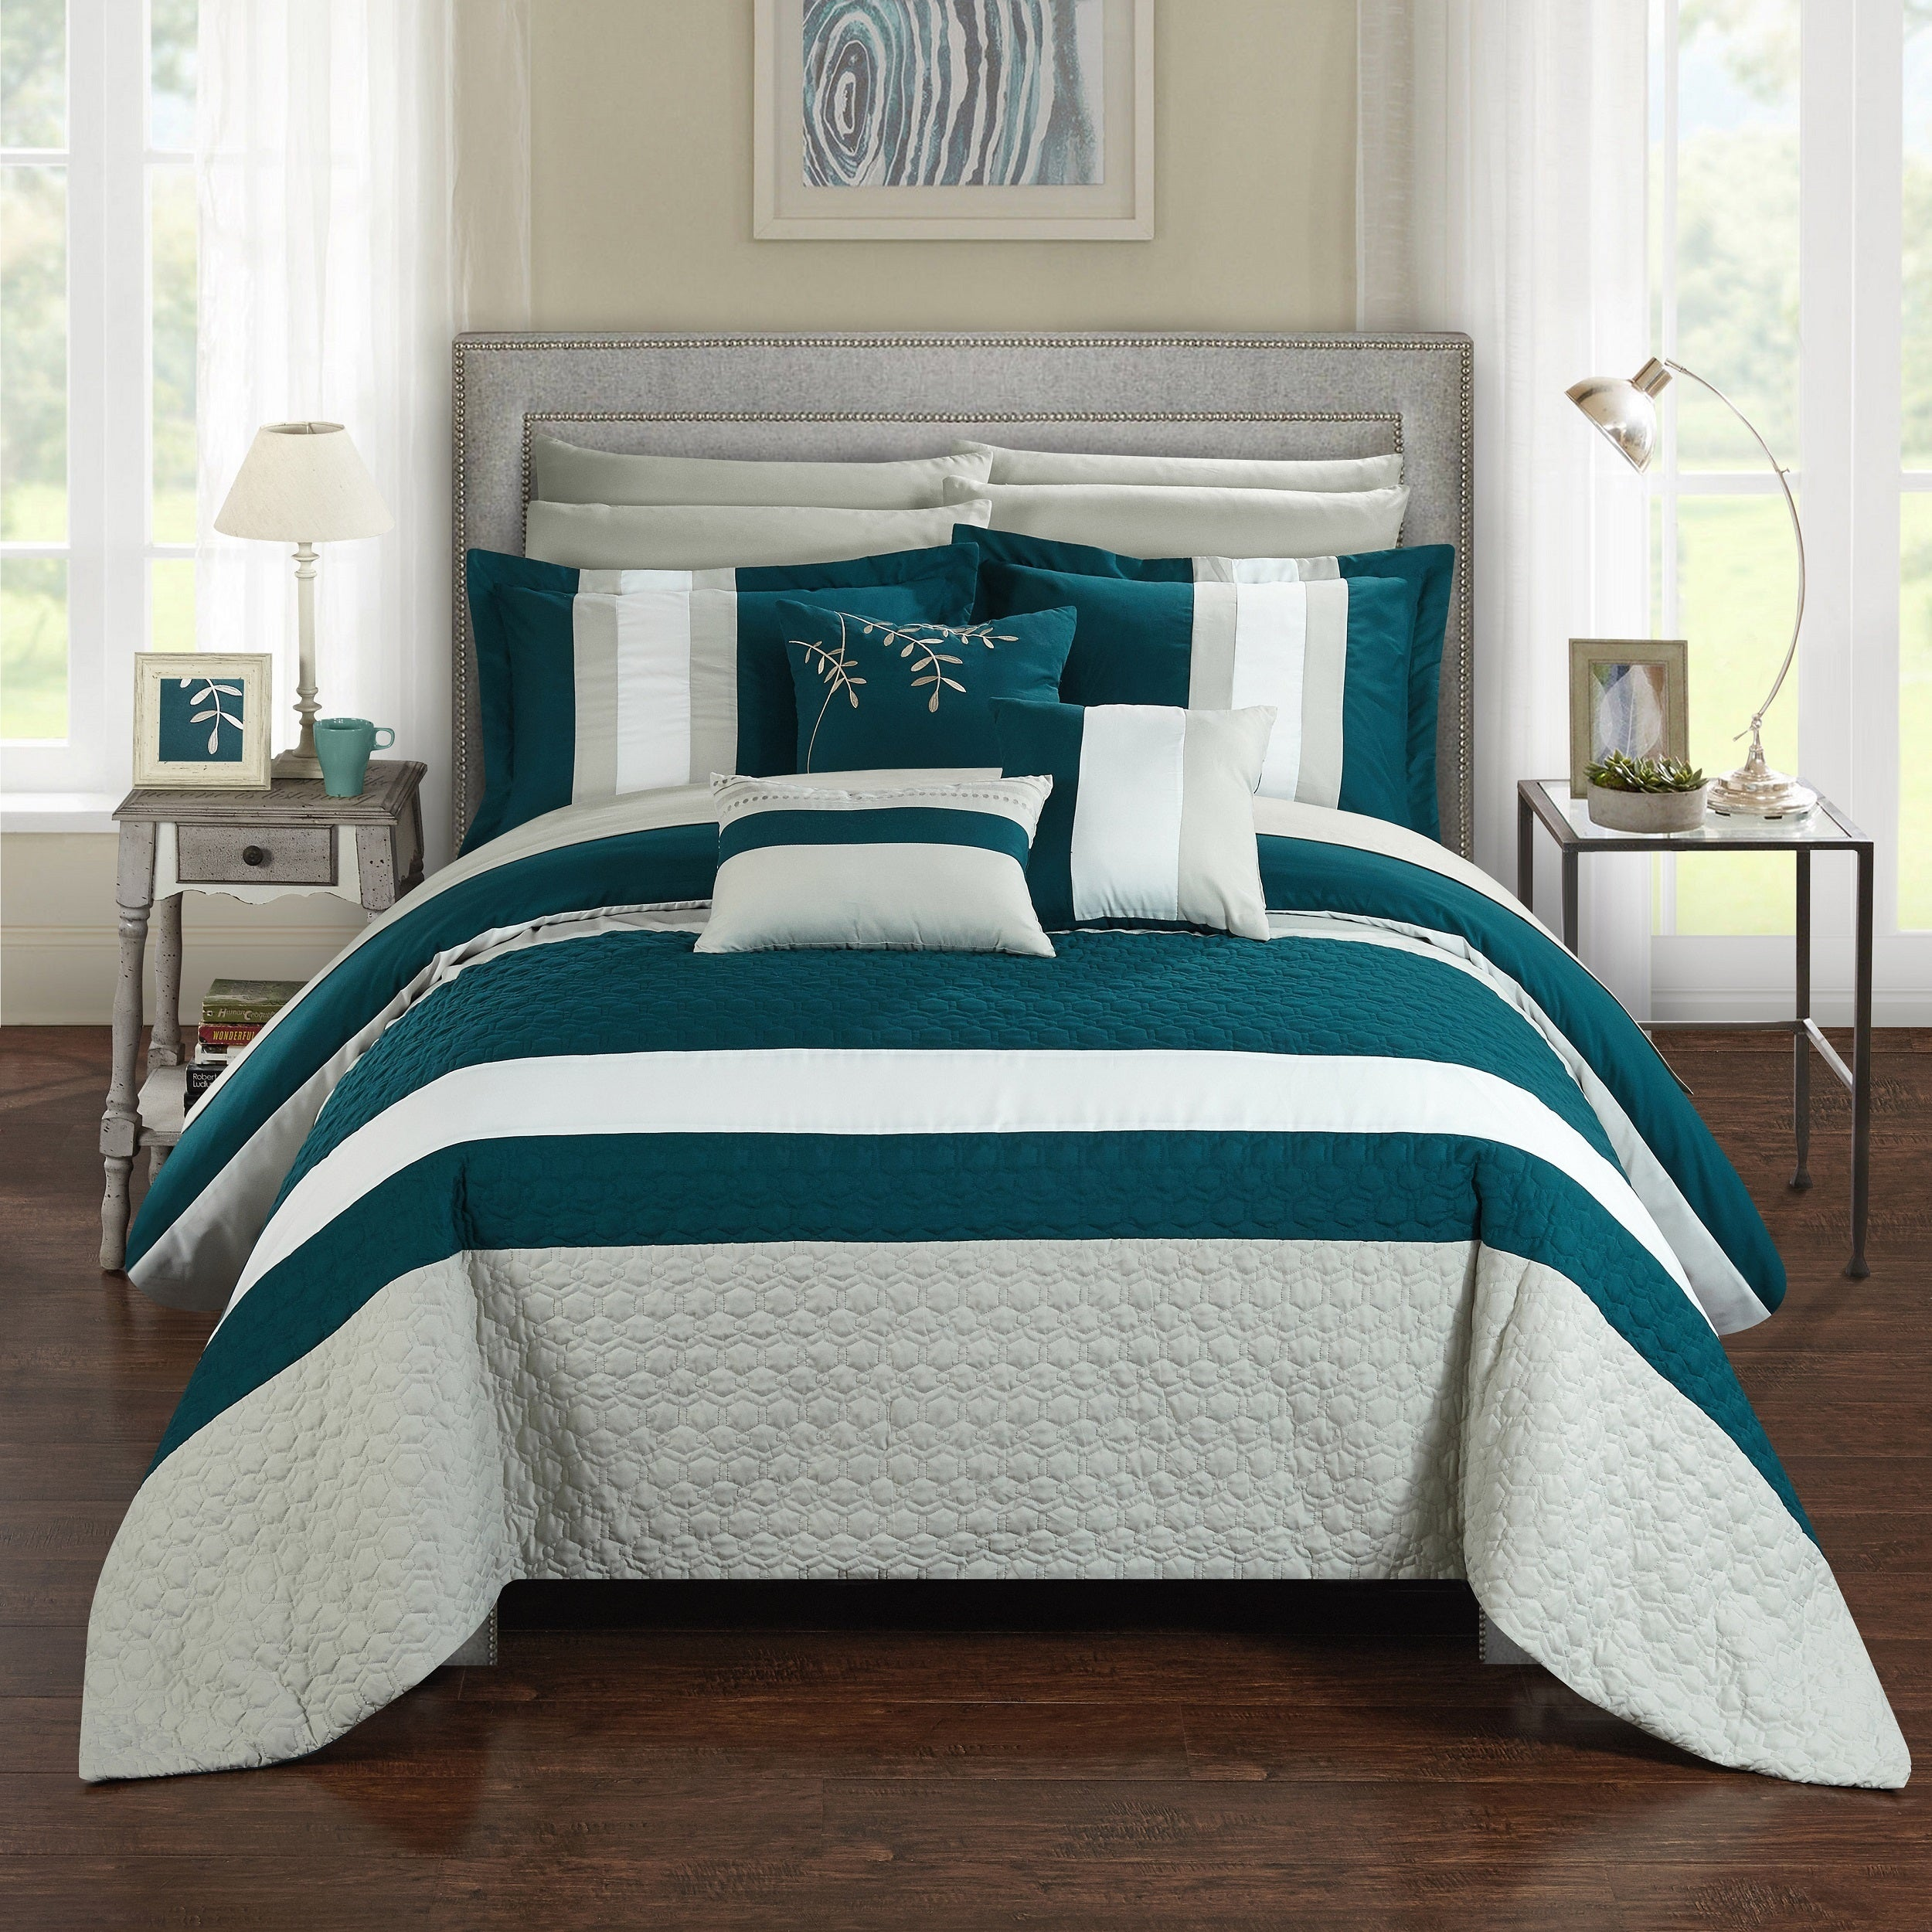 modern chevron comforter grey blue stripe new teal queen pin set full aqua sporty